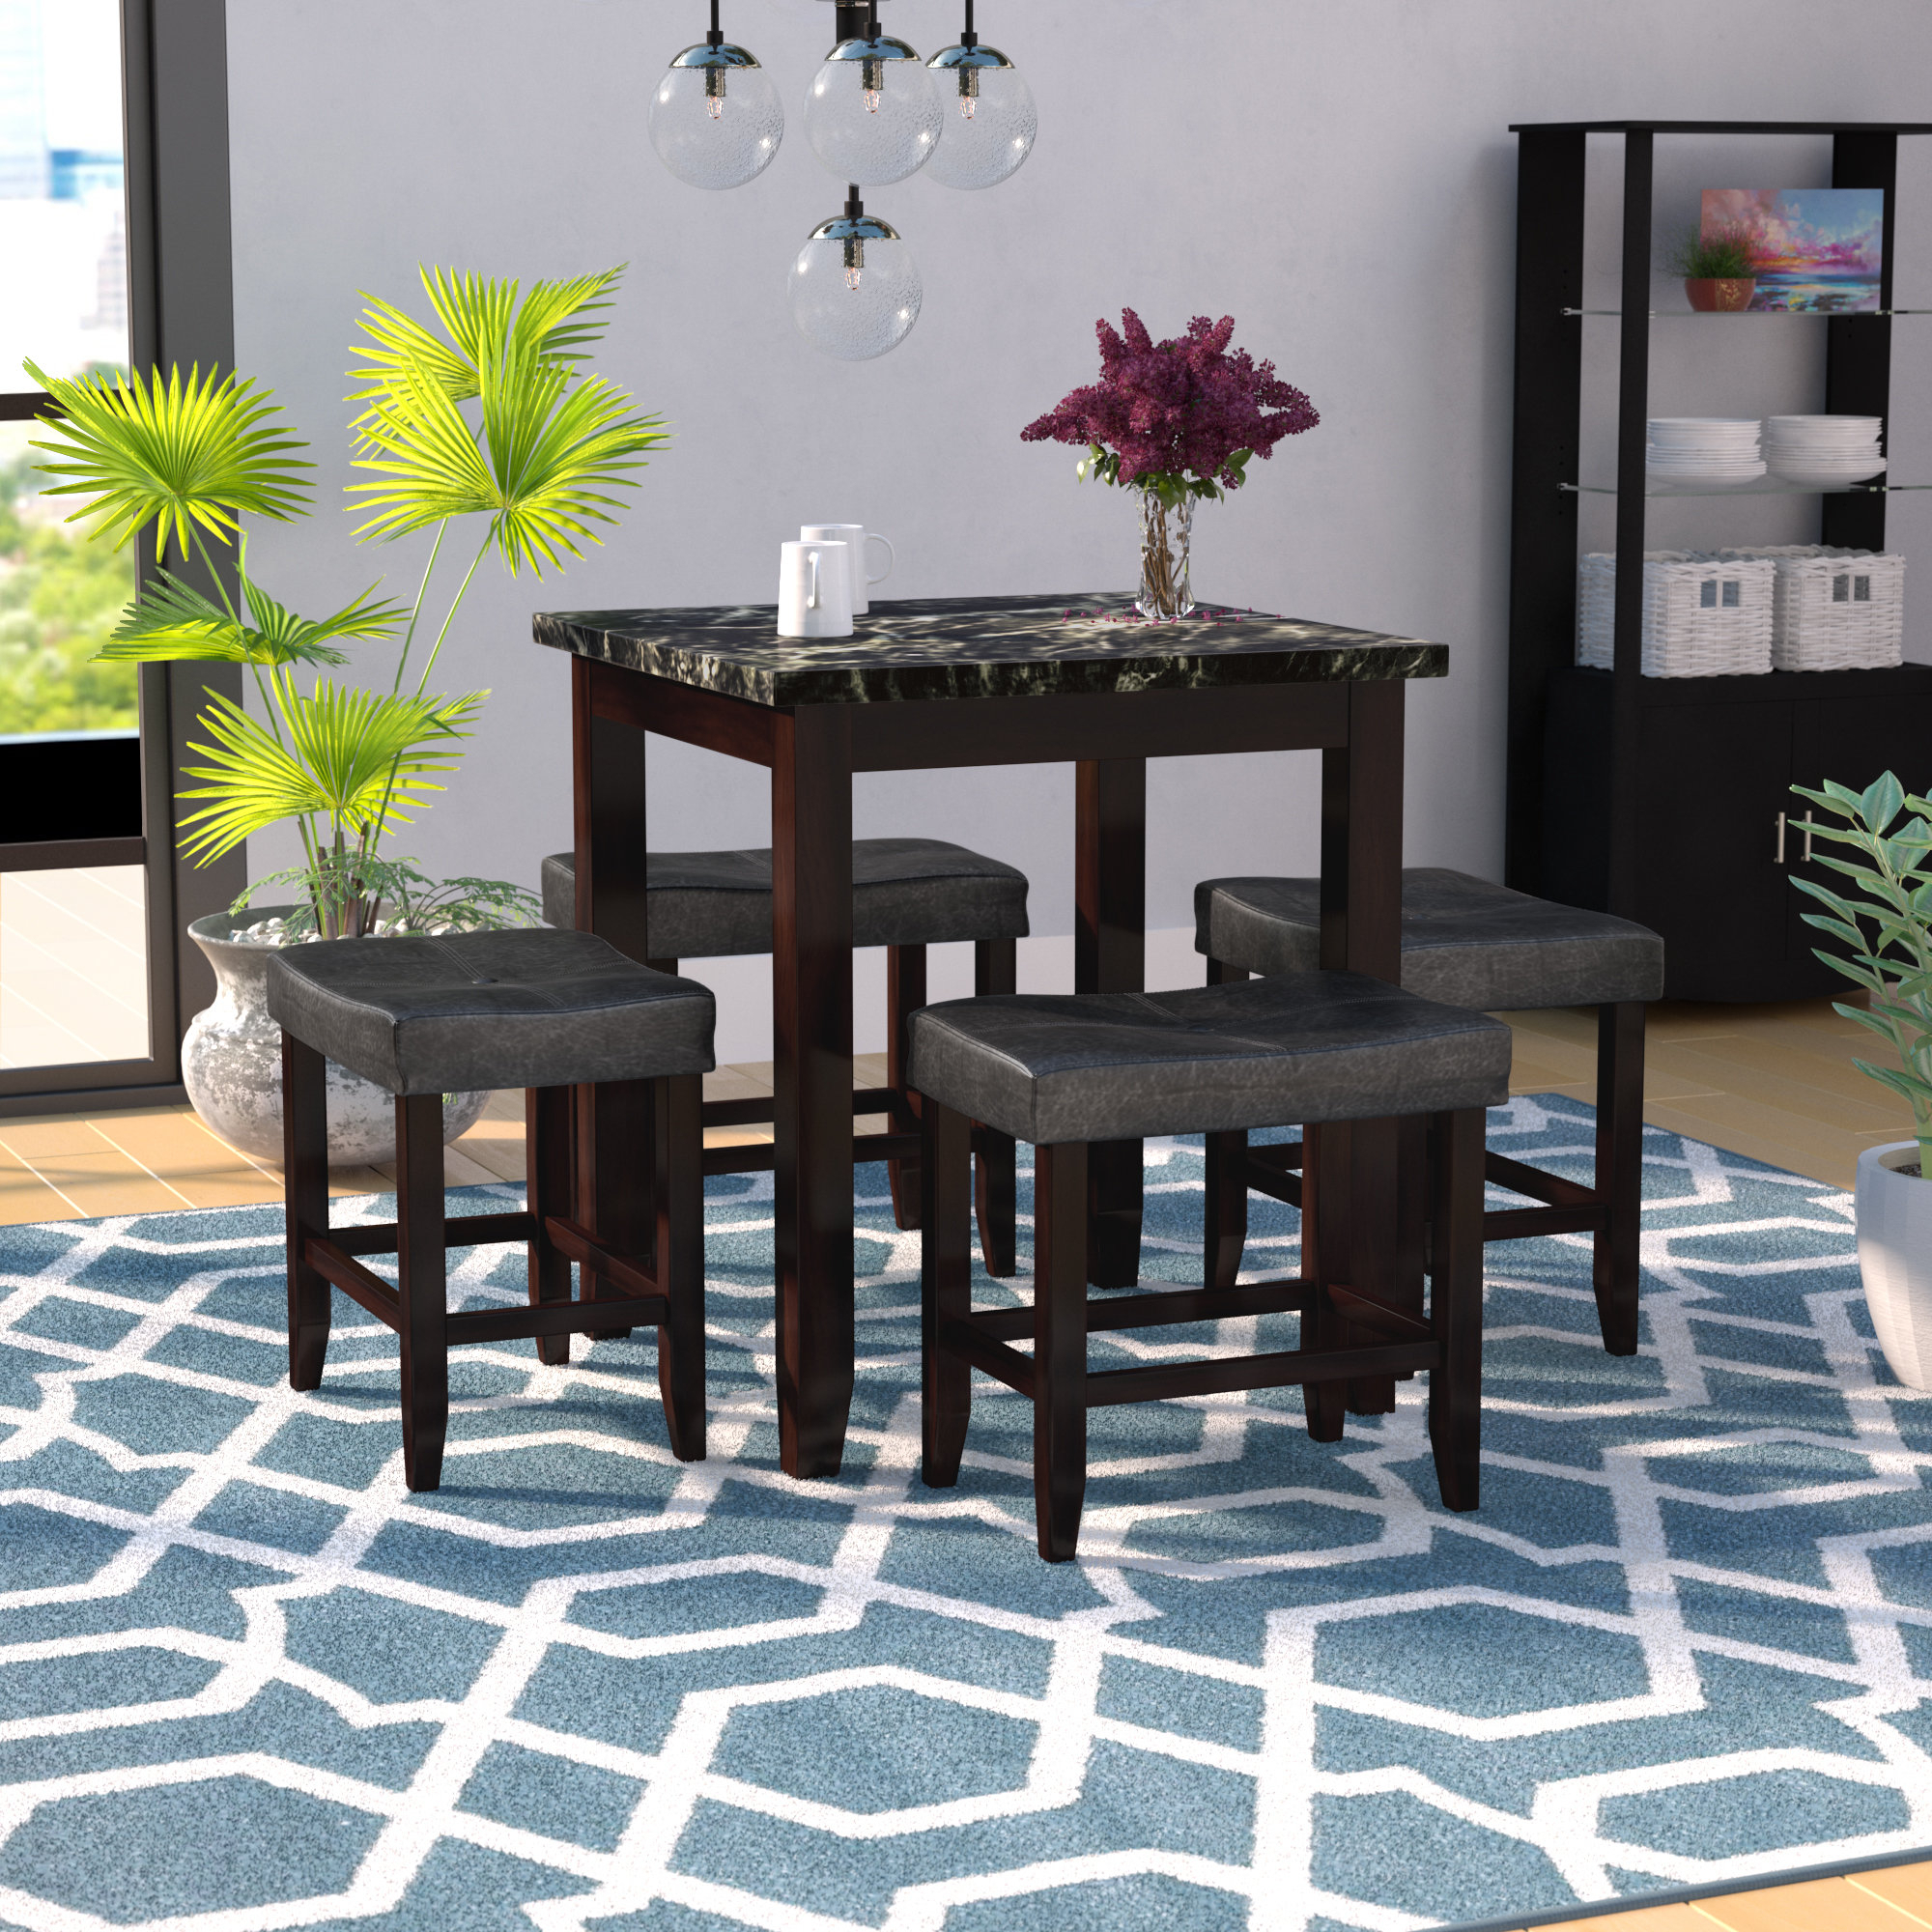 Well Liked Dehaven 5 Piece Counter Height Dining Set Within Miskell 3 Piece Dining Sets (View 19 of 20)